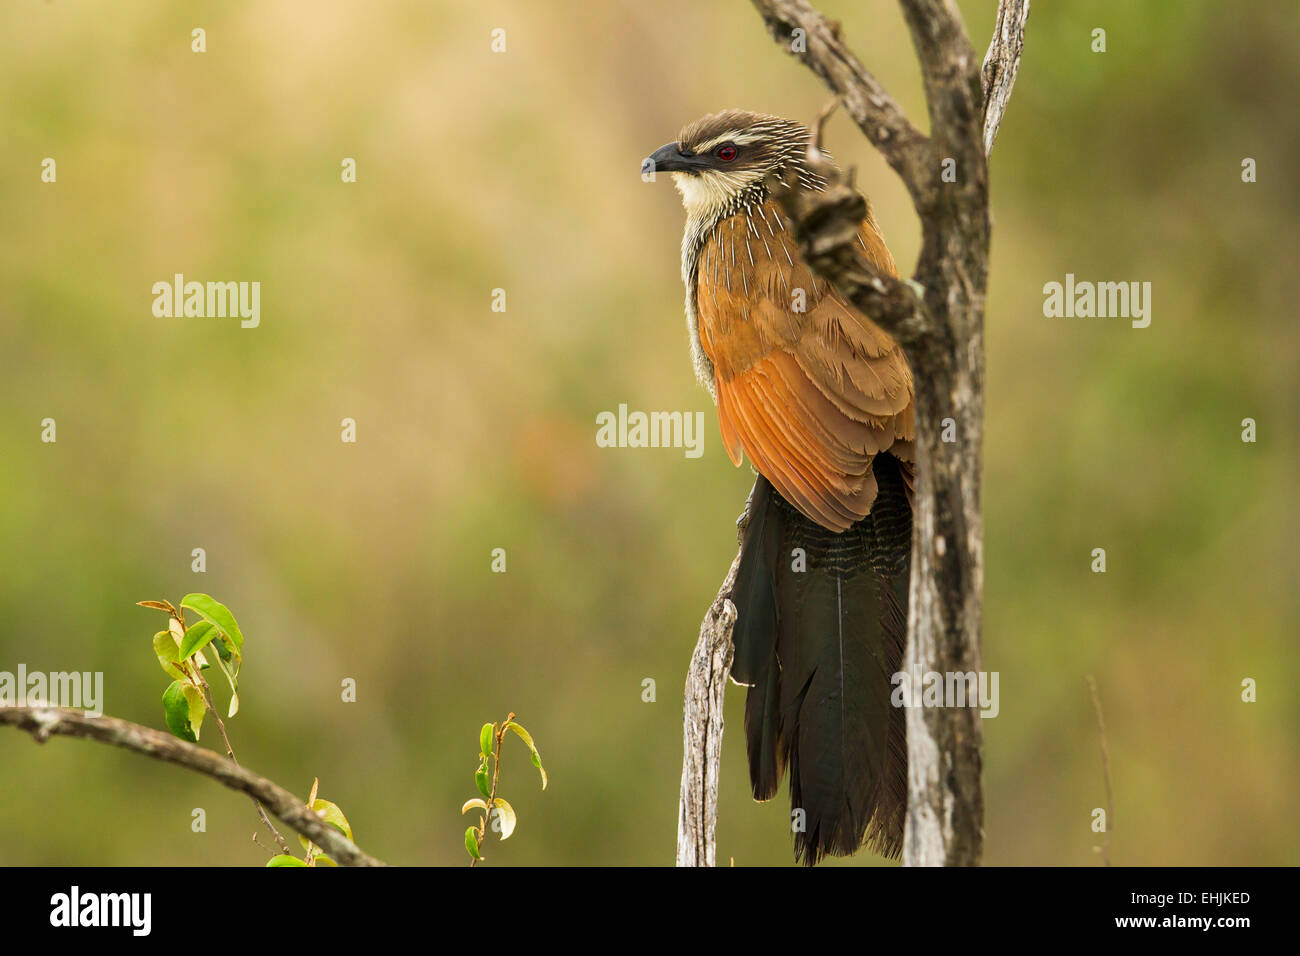 White-browed Coucal (Centropus supercilliosus) perched on a branch - Stock Image